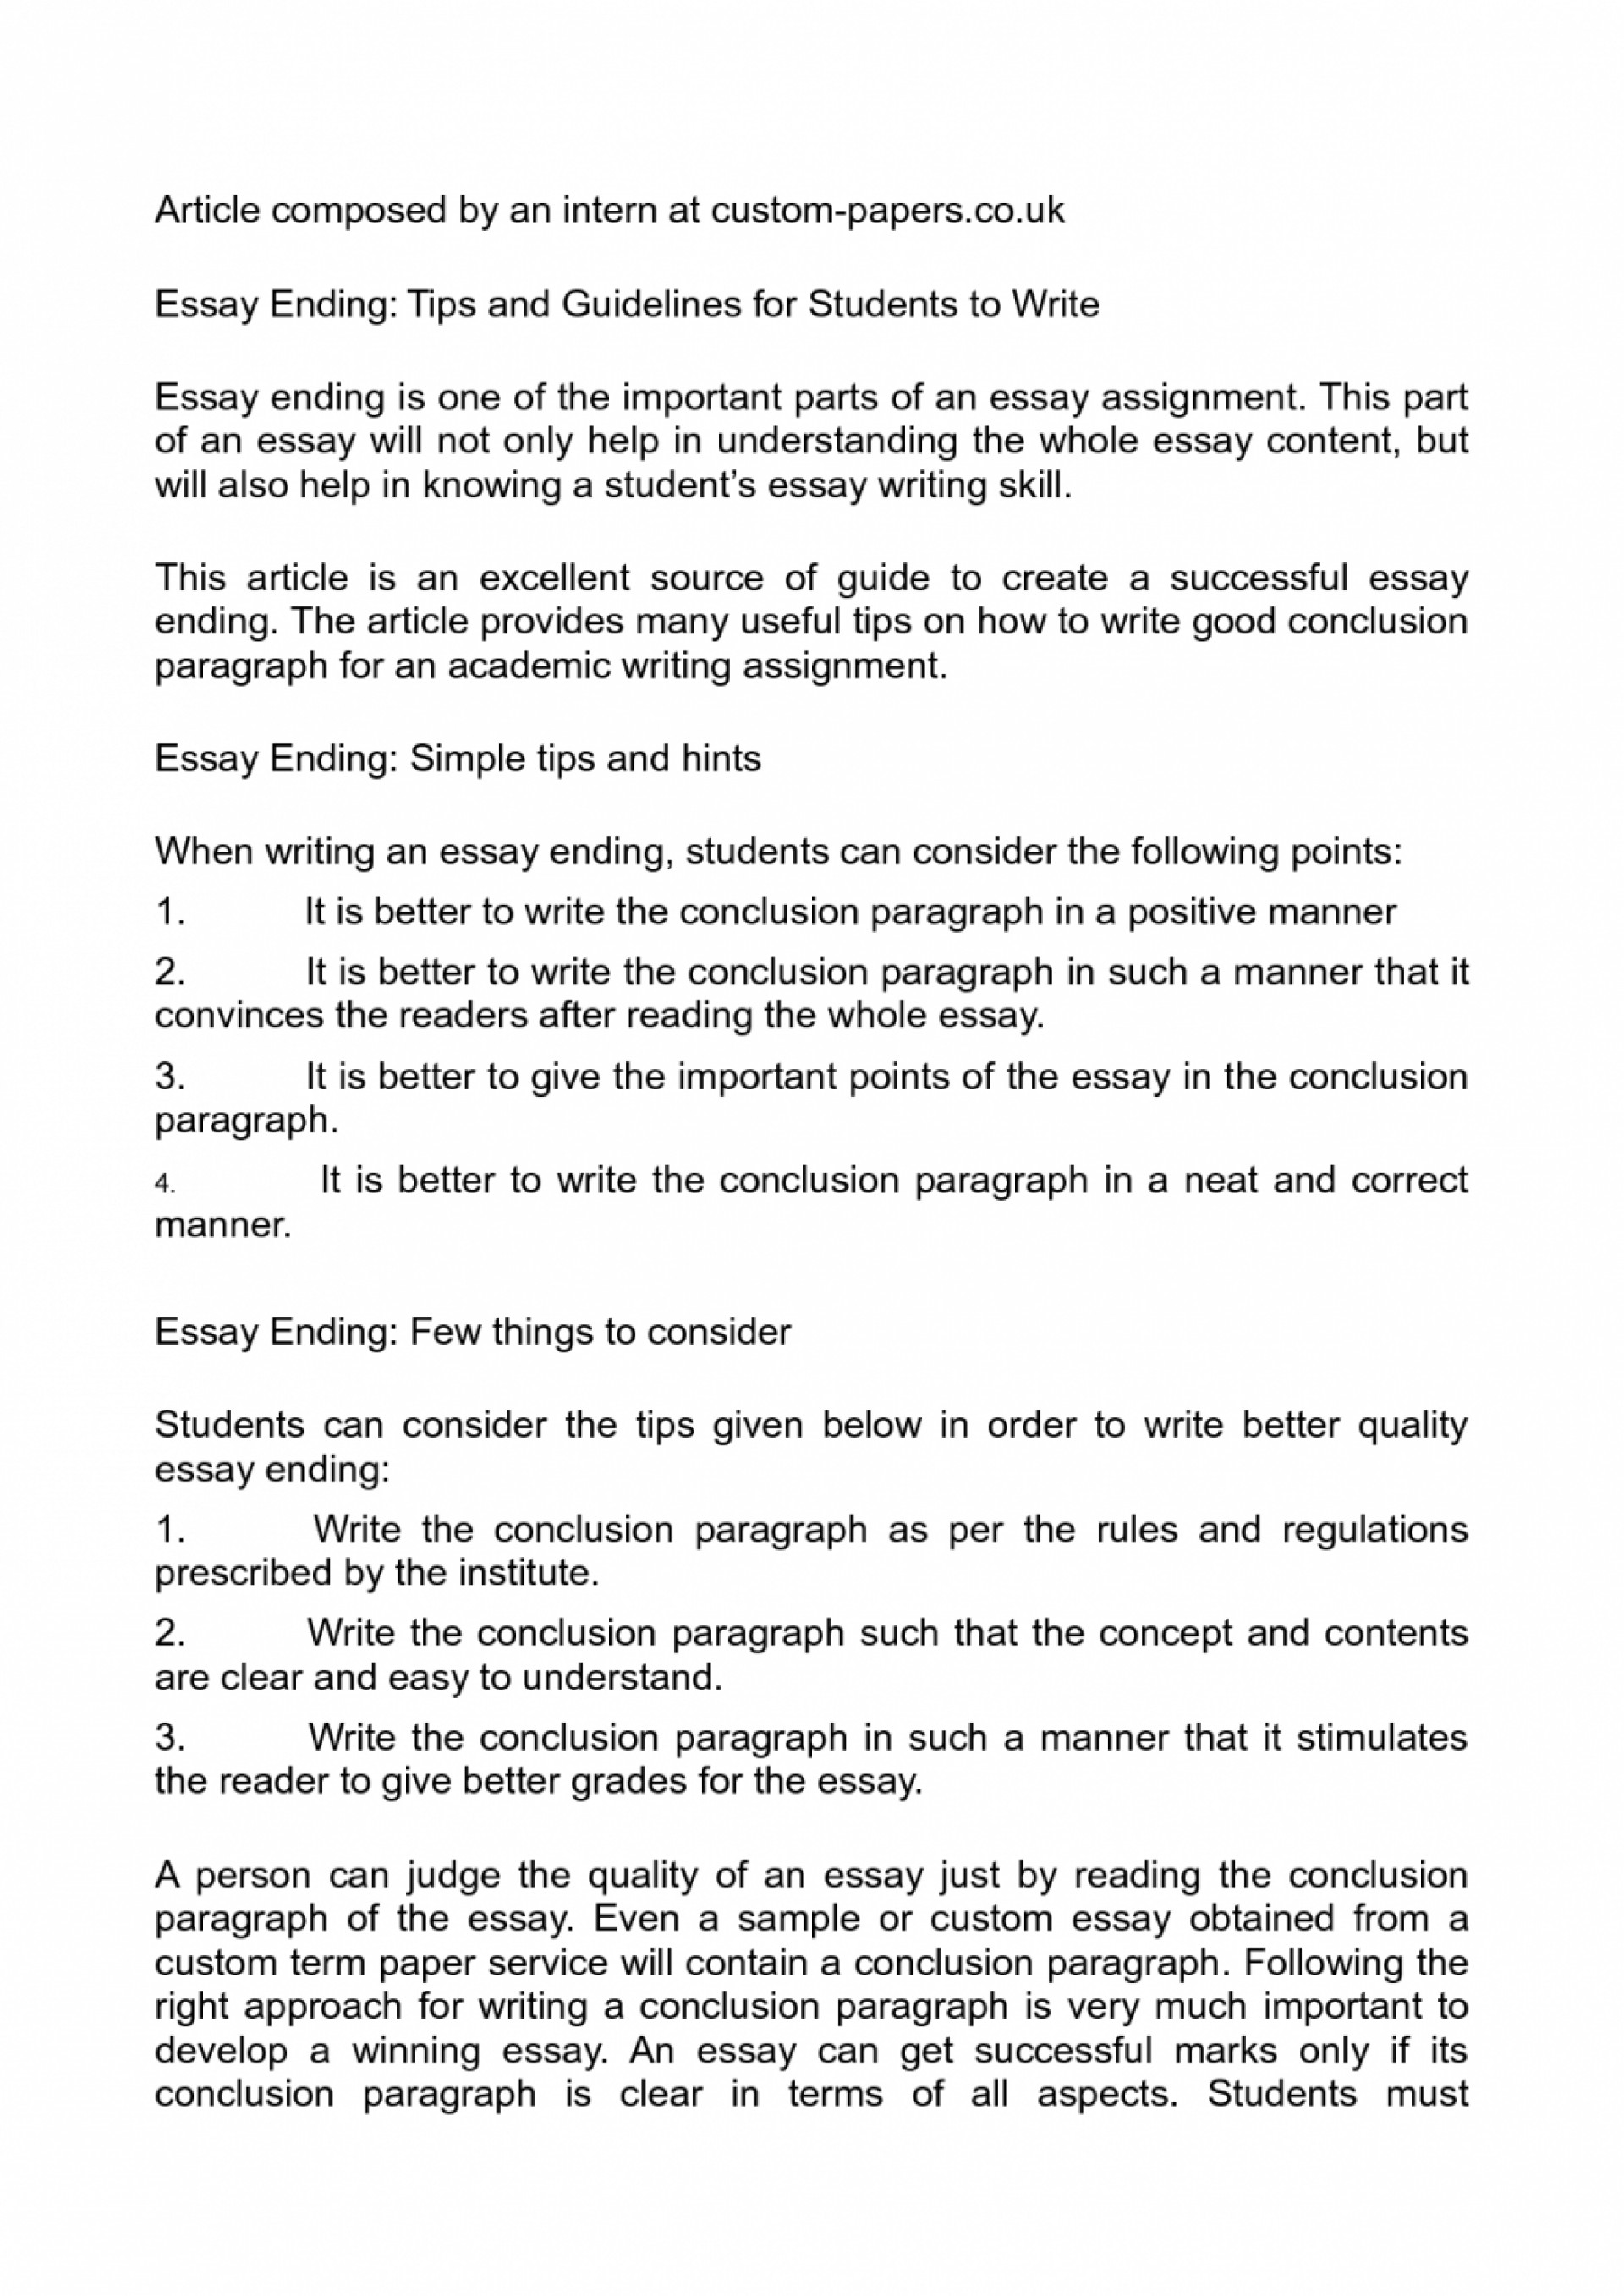 013 Good Ways To End An Essay Example Ending Is It Okay With Question Pzwnx My Wrong Outstanding Opinion Best Way Argumentative What Are Some 1920